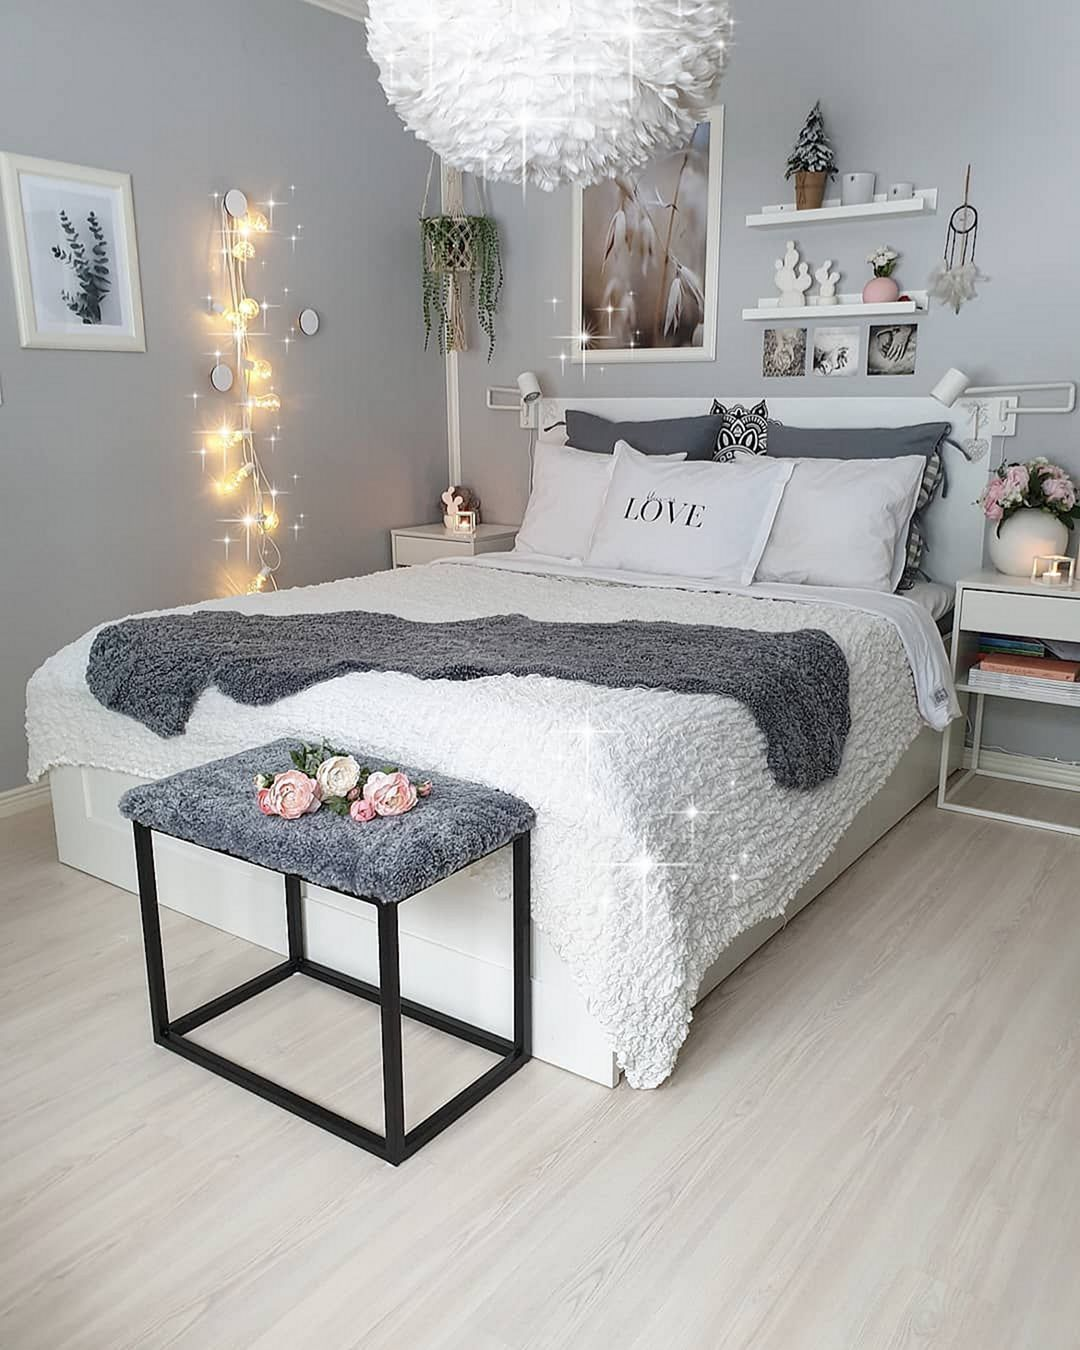 Charming And Beautiful Bedroom Ideas For Women 2020 Small Bedroom Decor Stylish Bedroom Small Room Bedroom